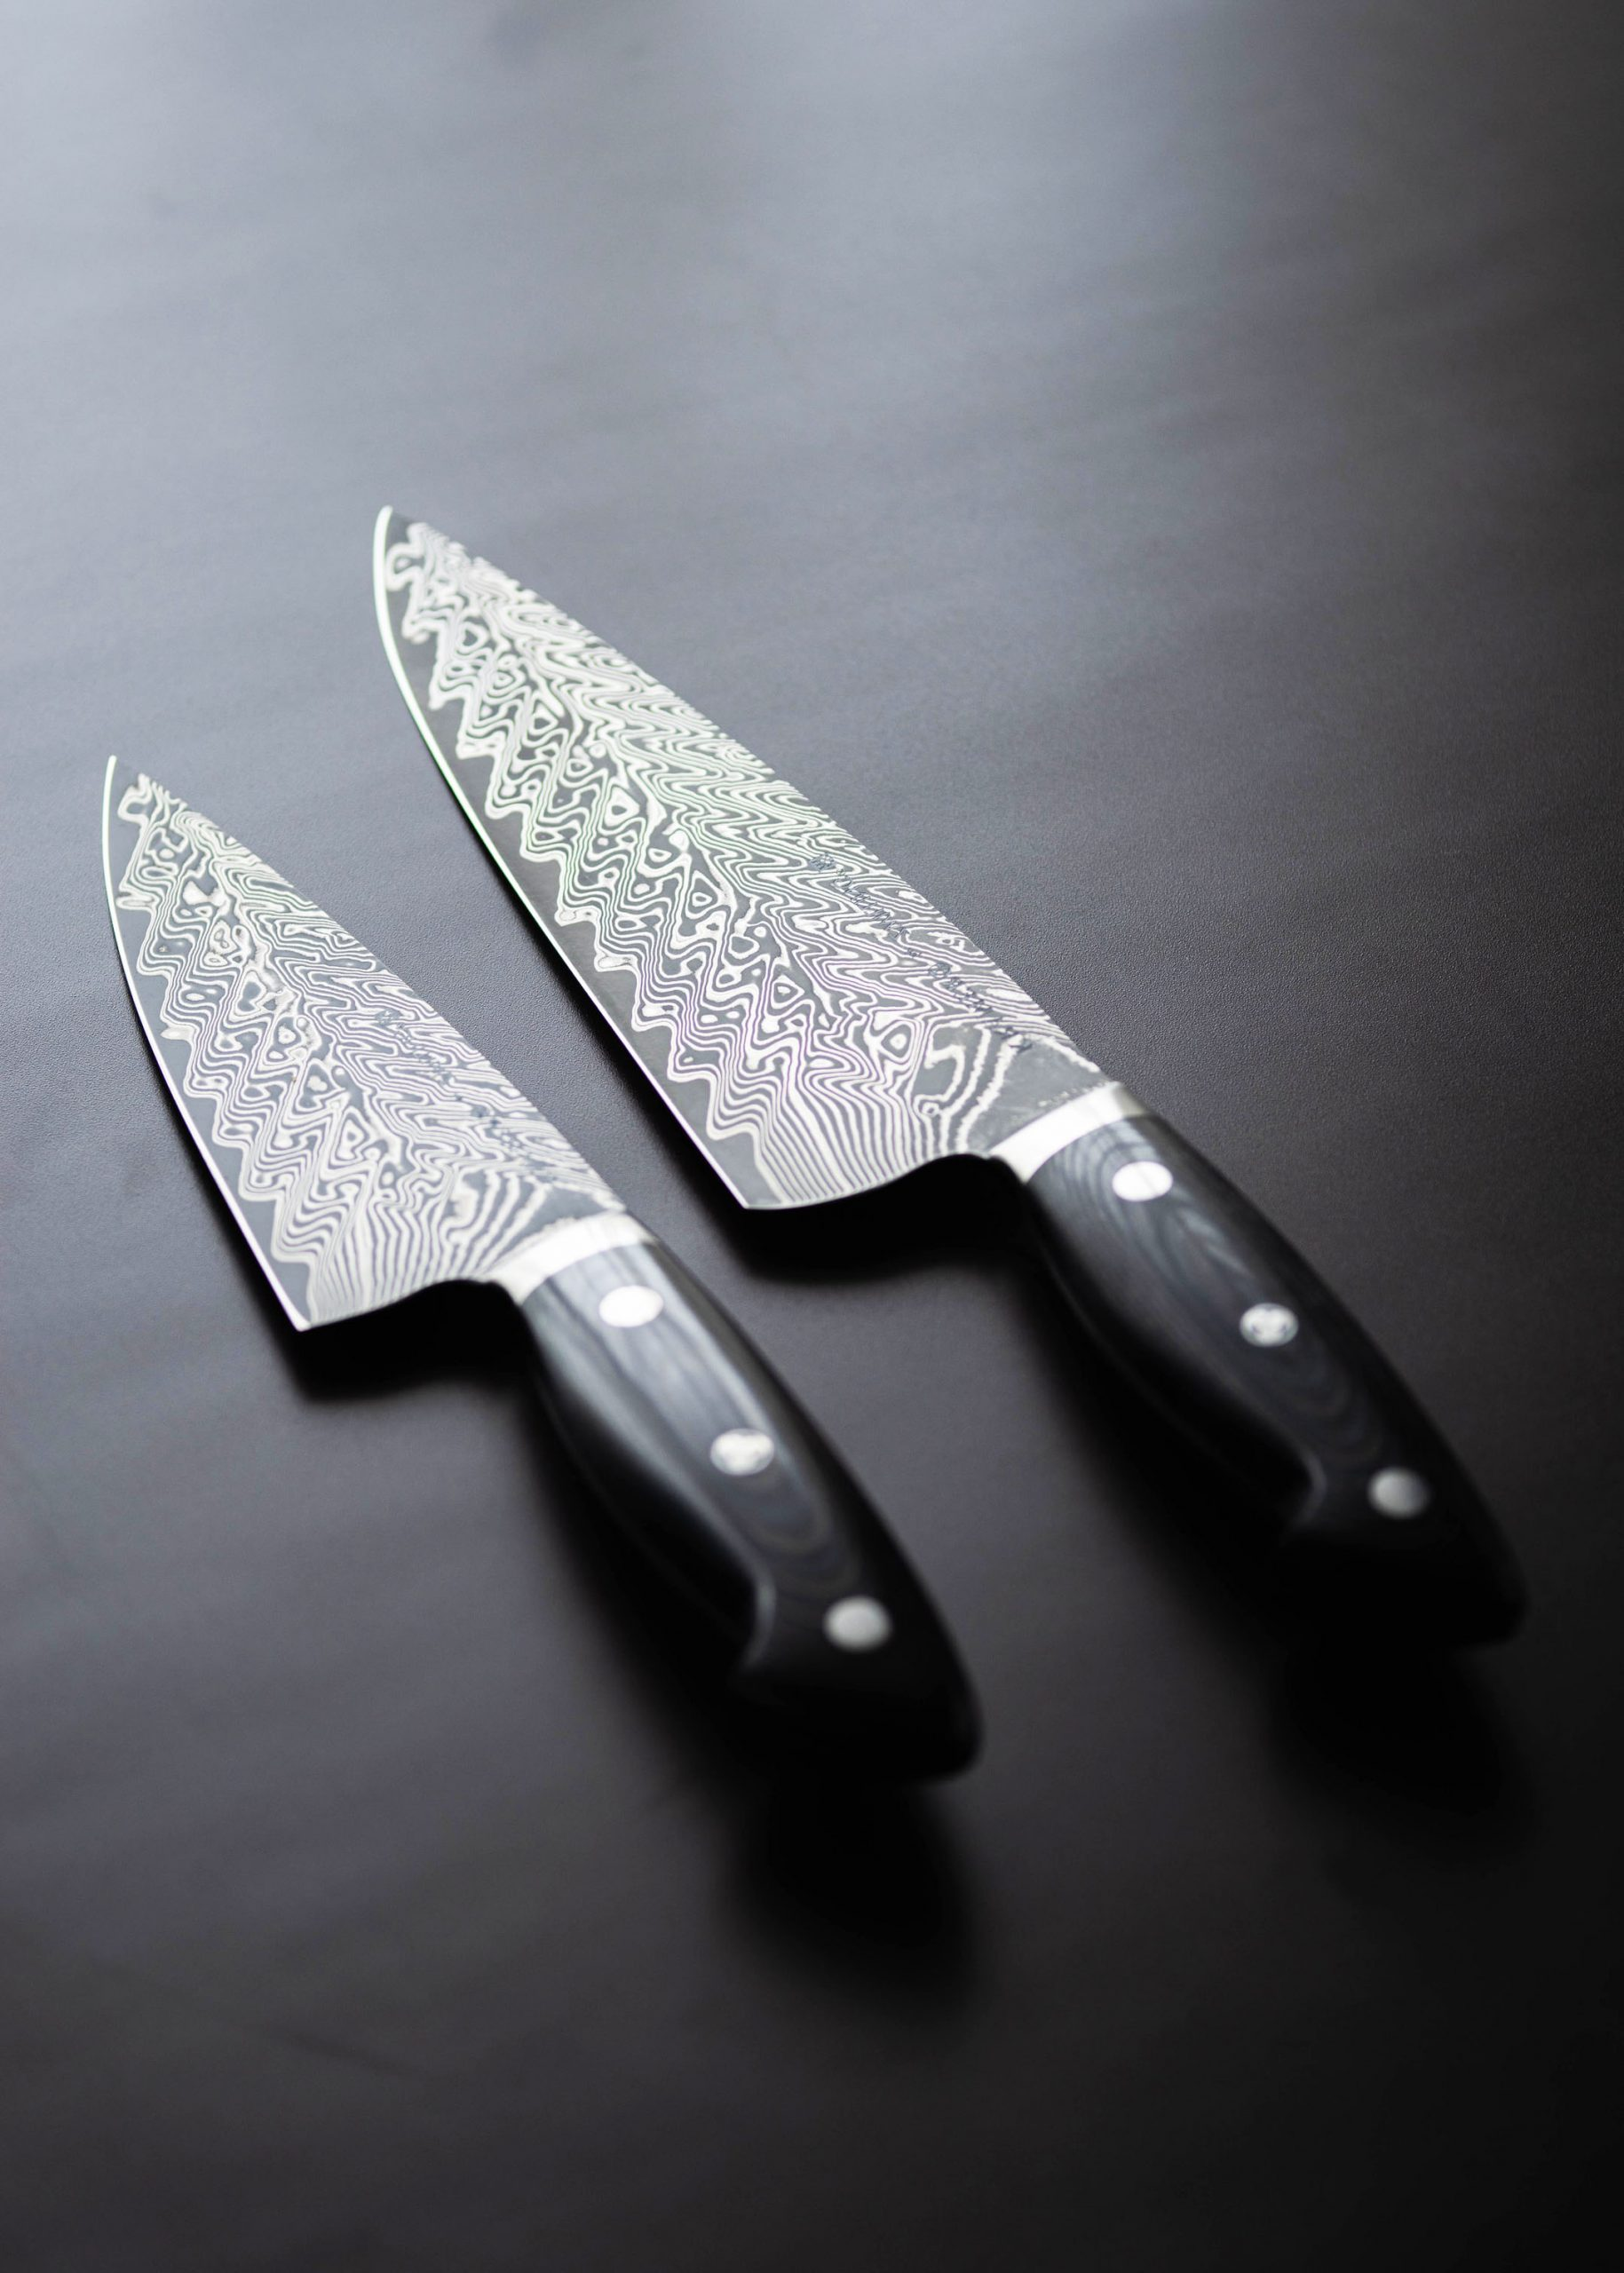 What You Need to Know About Damascus Steel